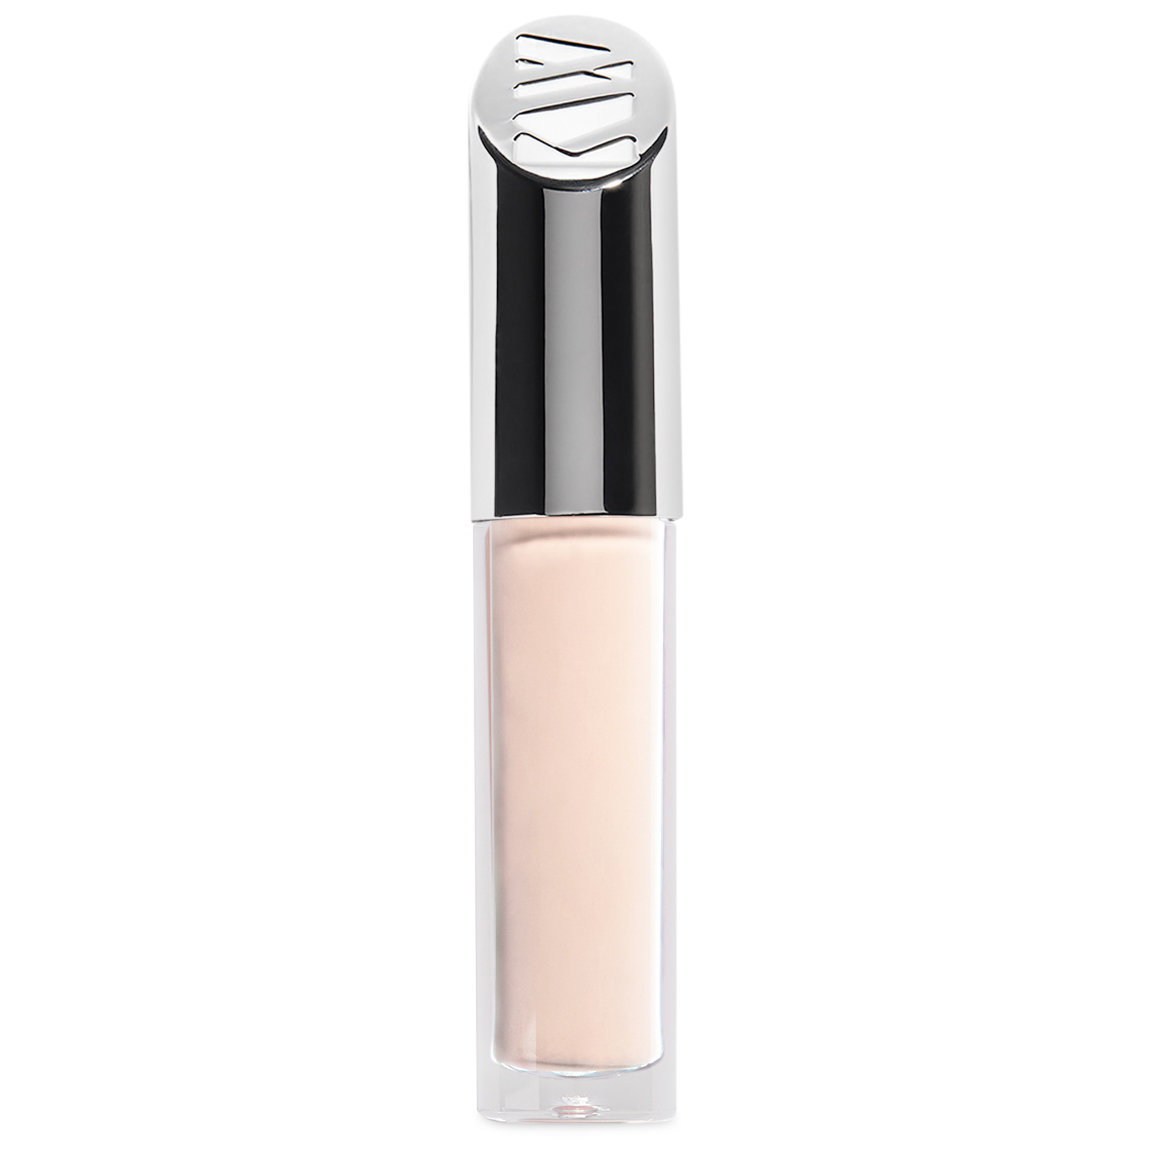 Kjaer Weis Invisible Touch Concealer F110